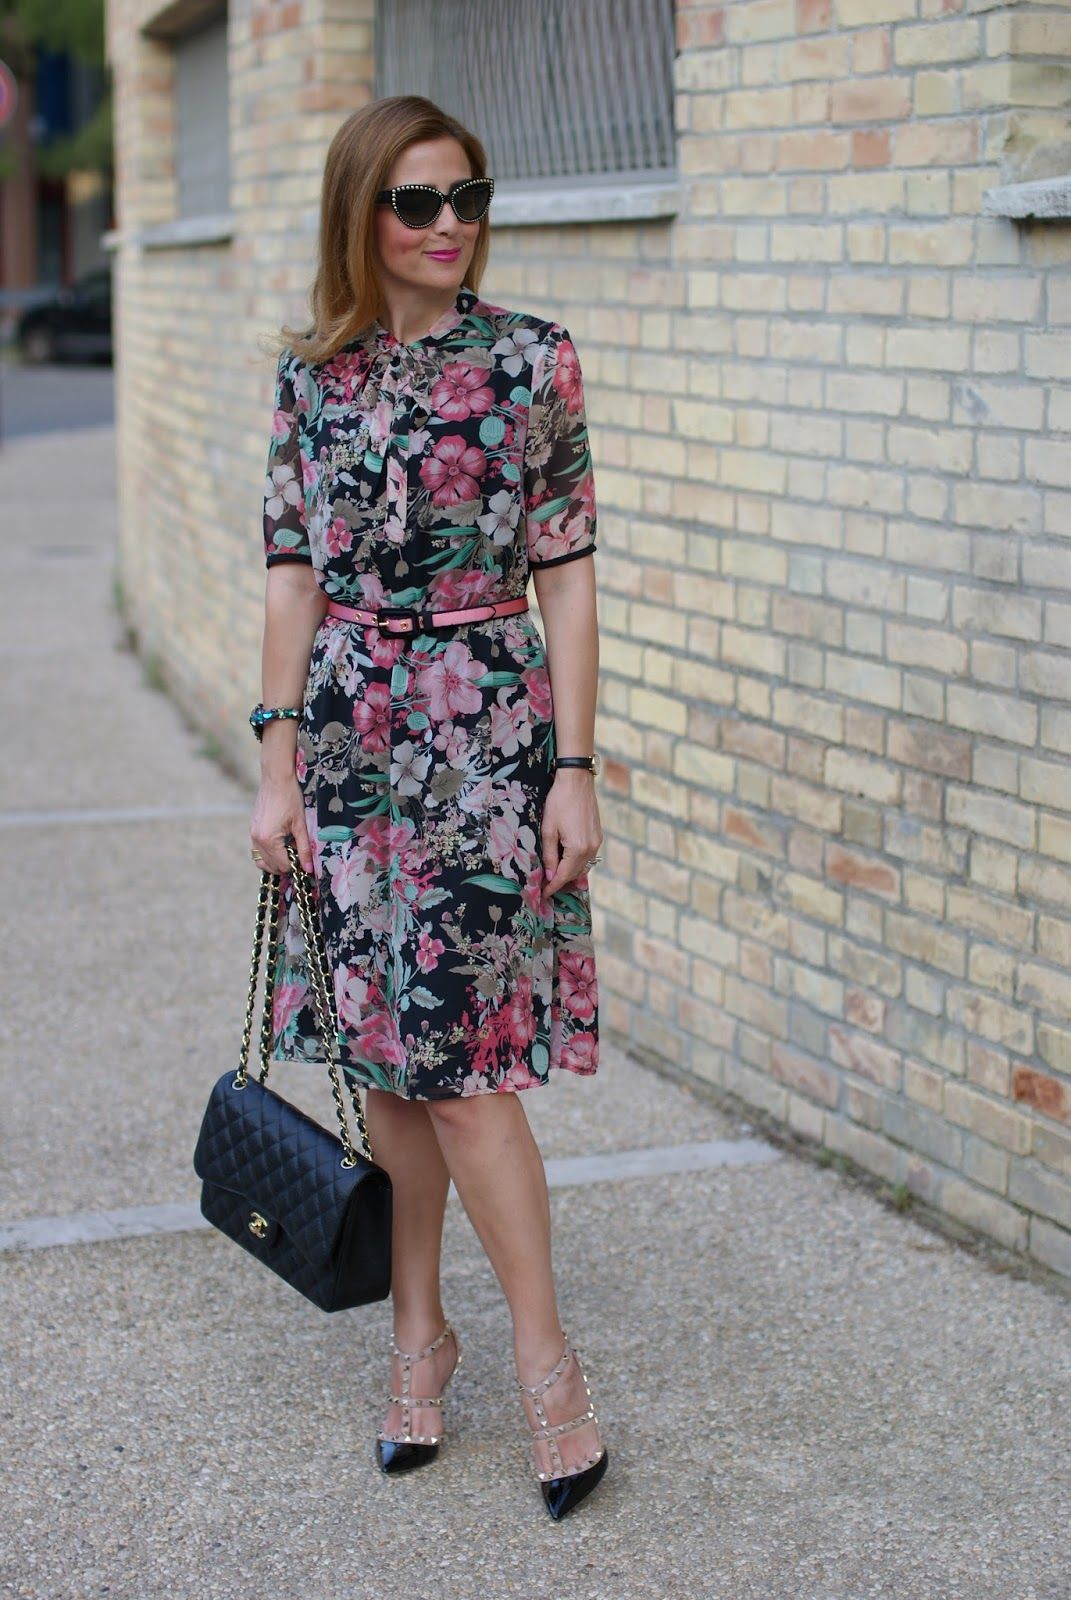 c9c9a0b83fba Chic floral dress with timeless accessories